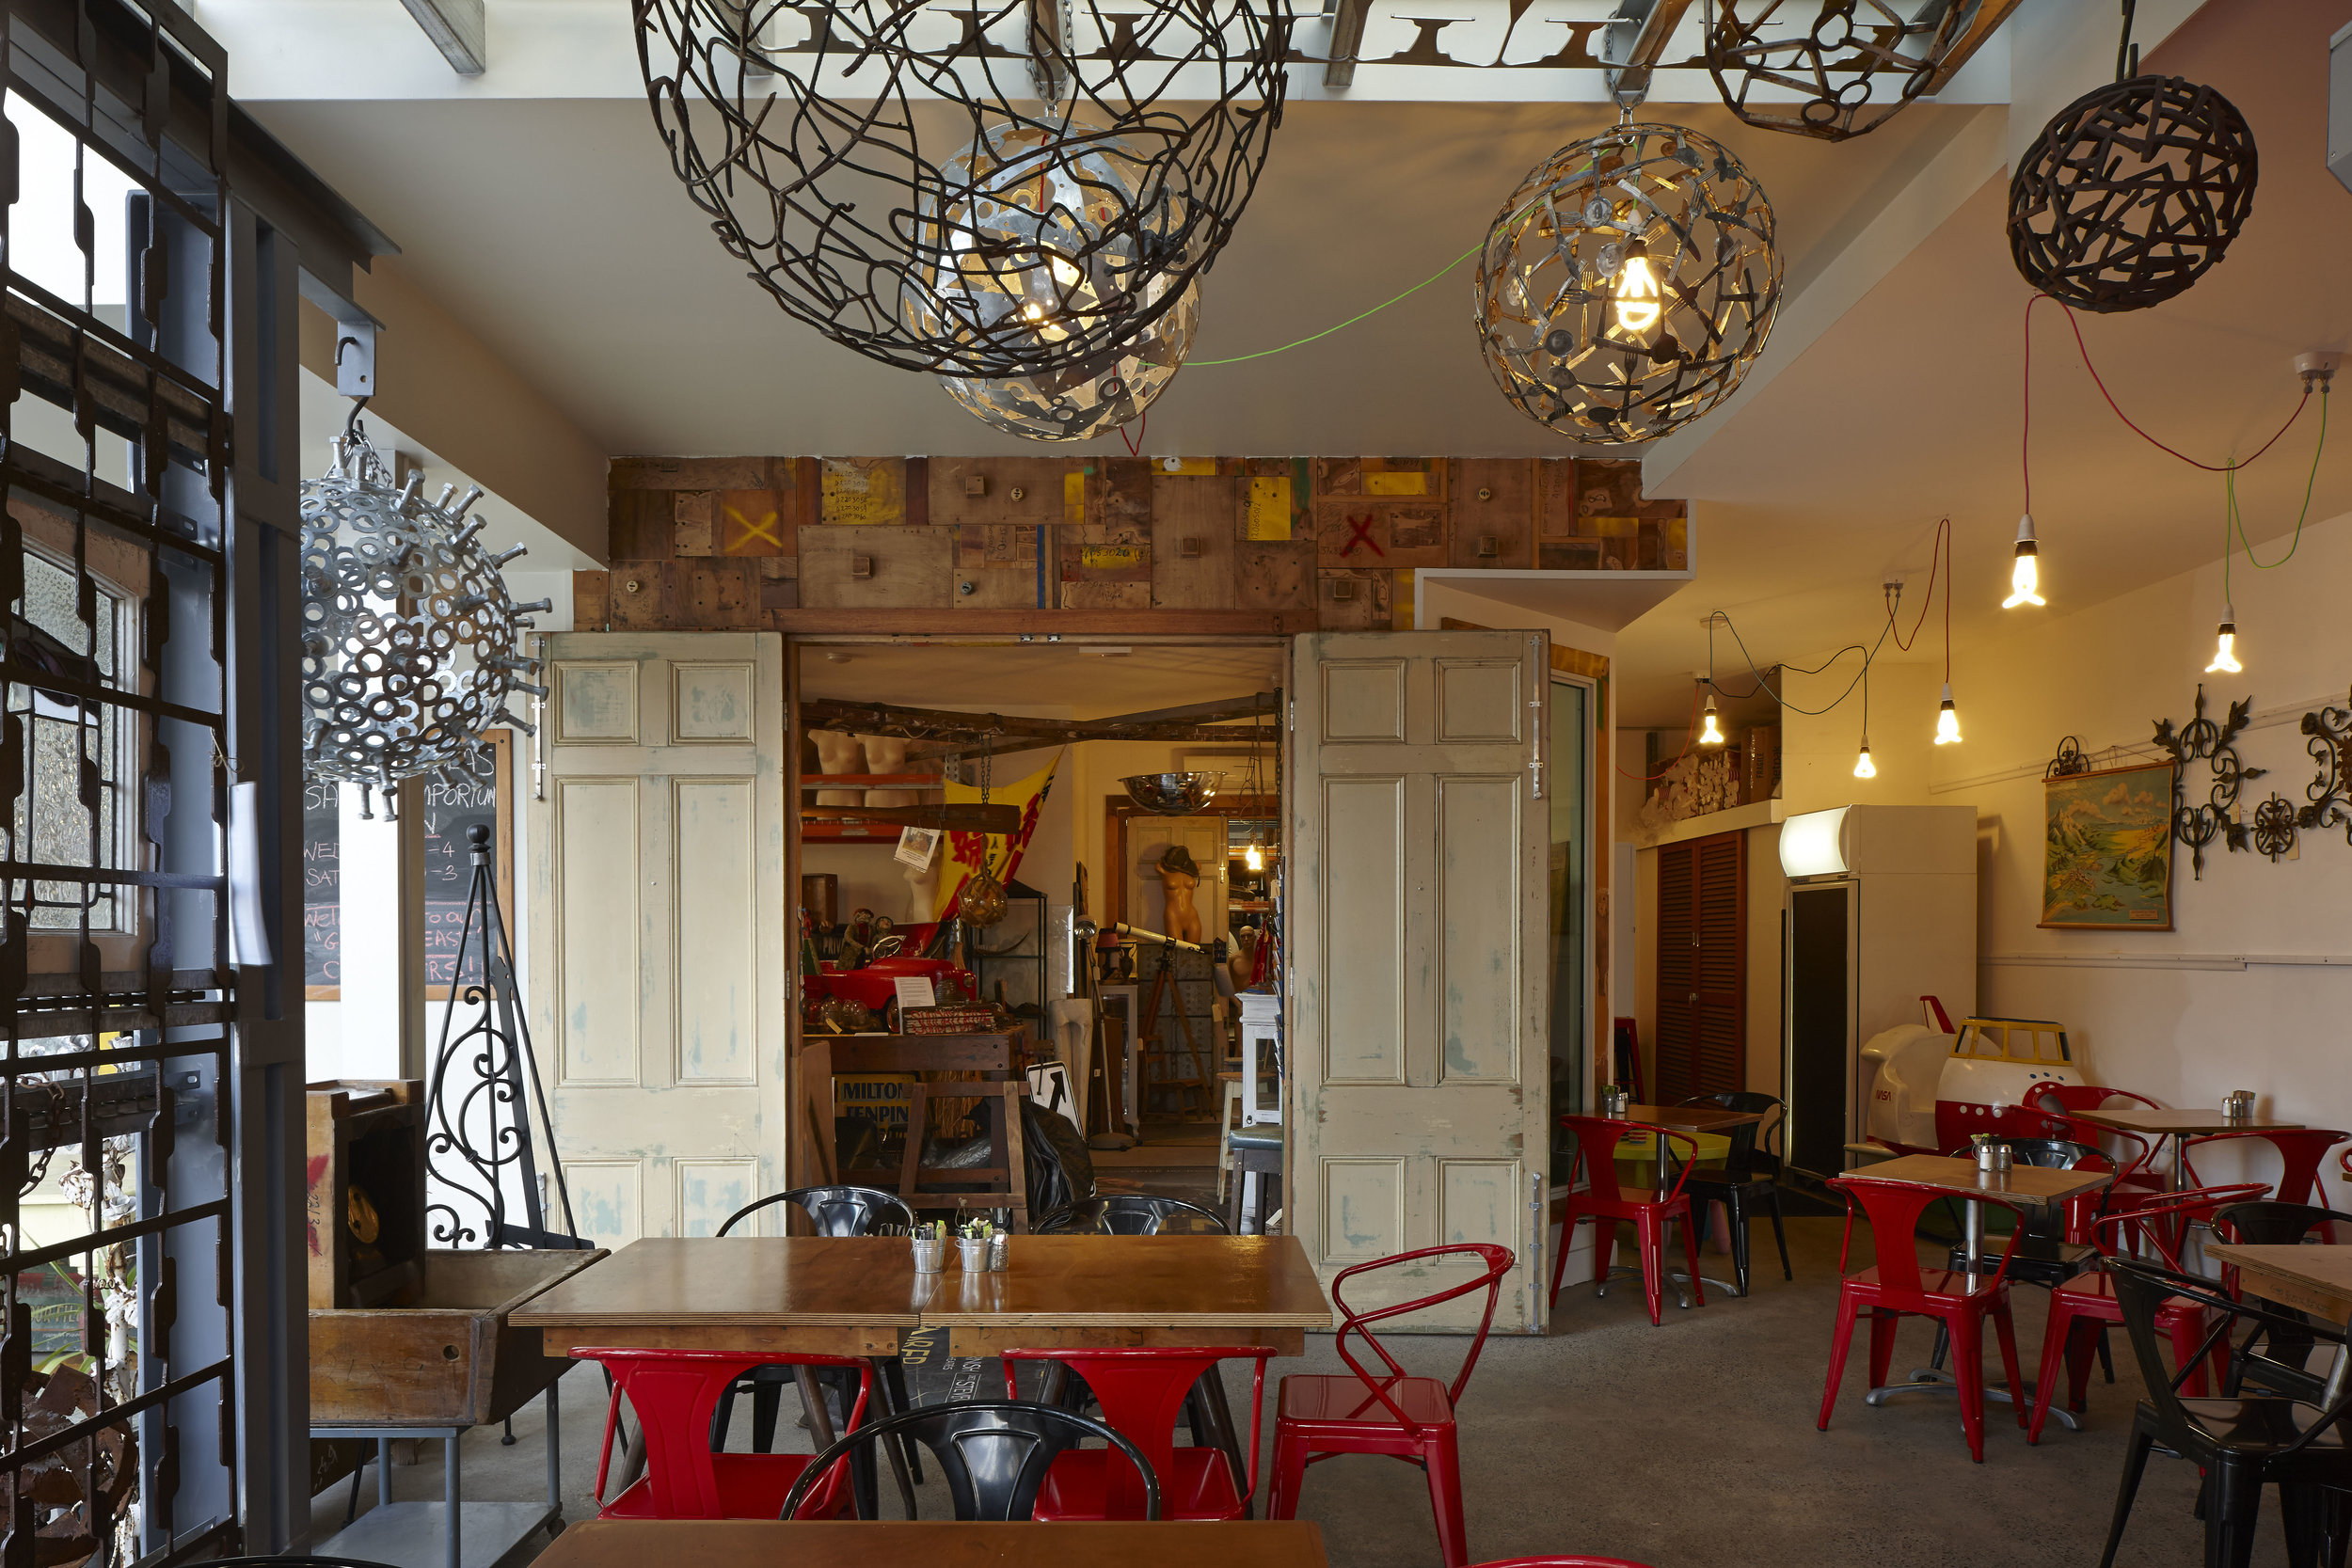 Guymer-bailey-architects-Grand-Ideas-cafe-commercial-05.jpg